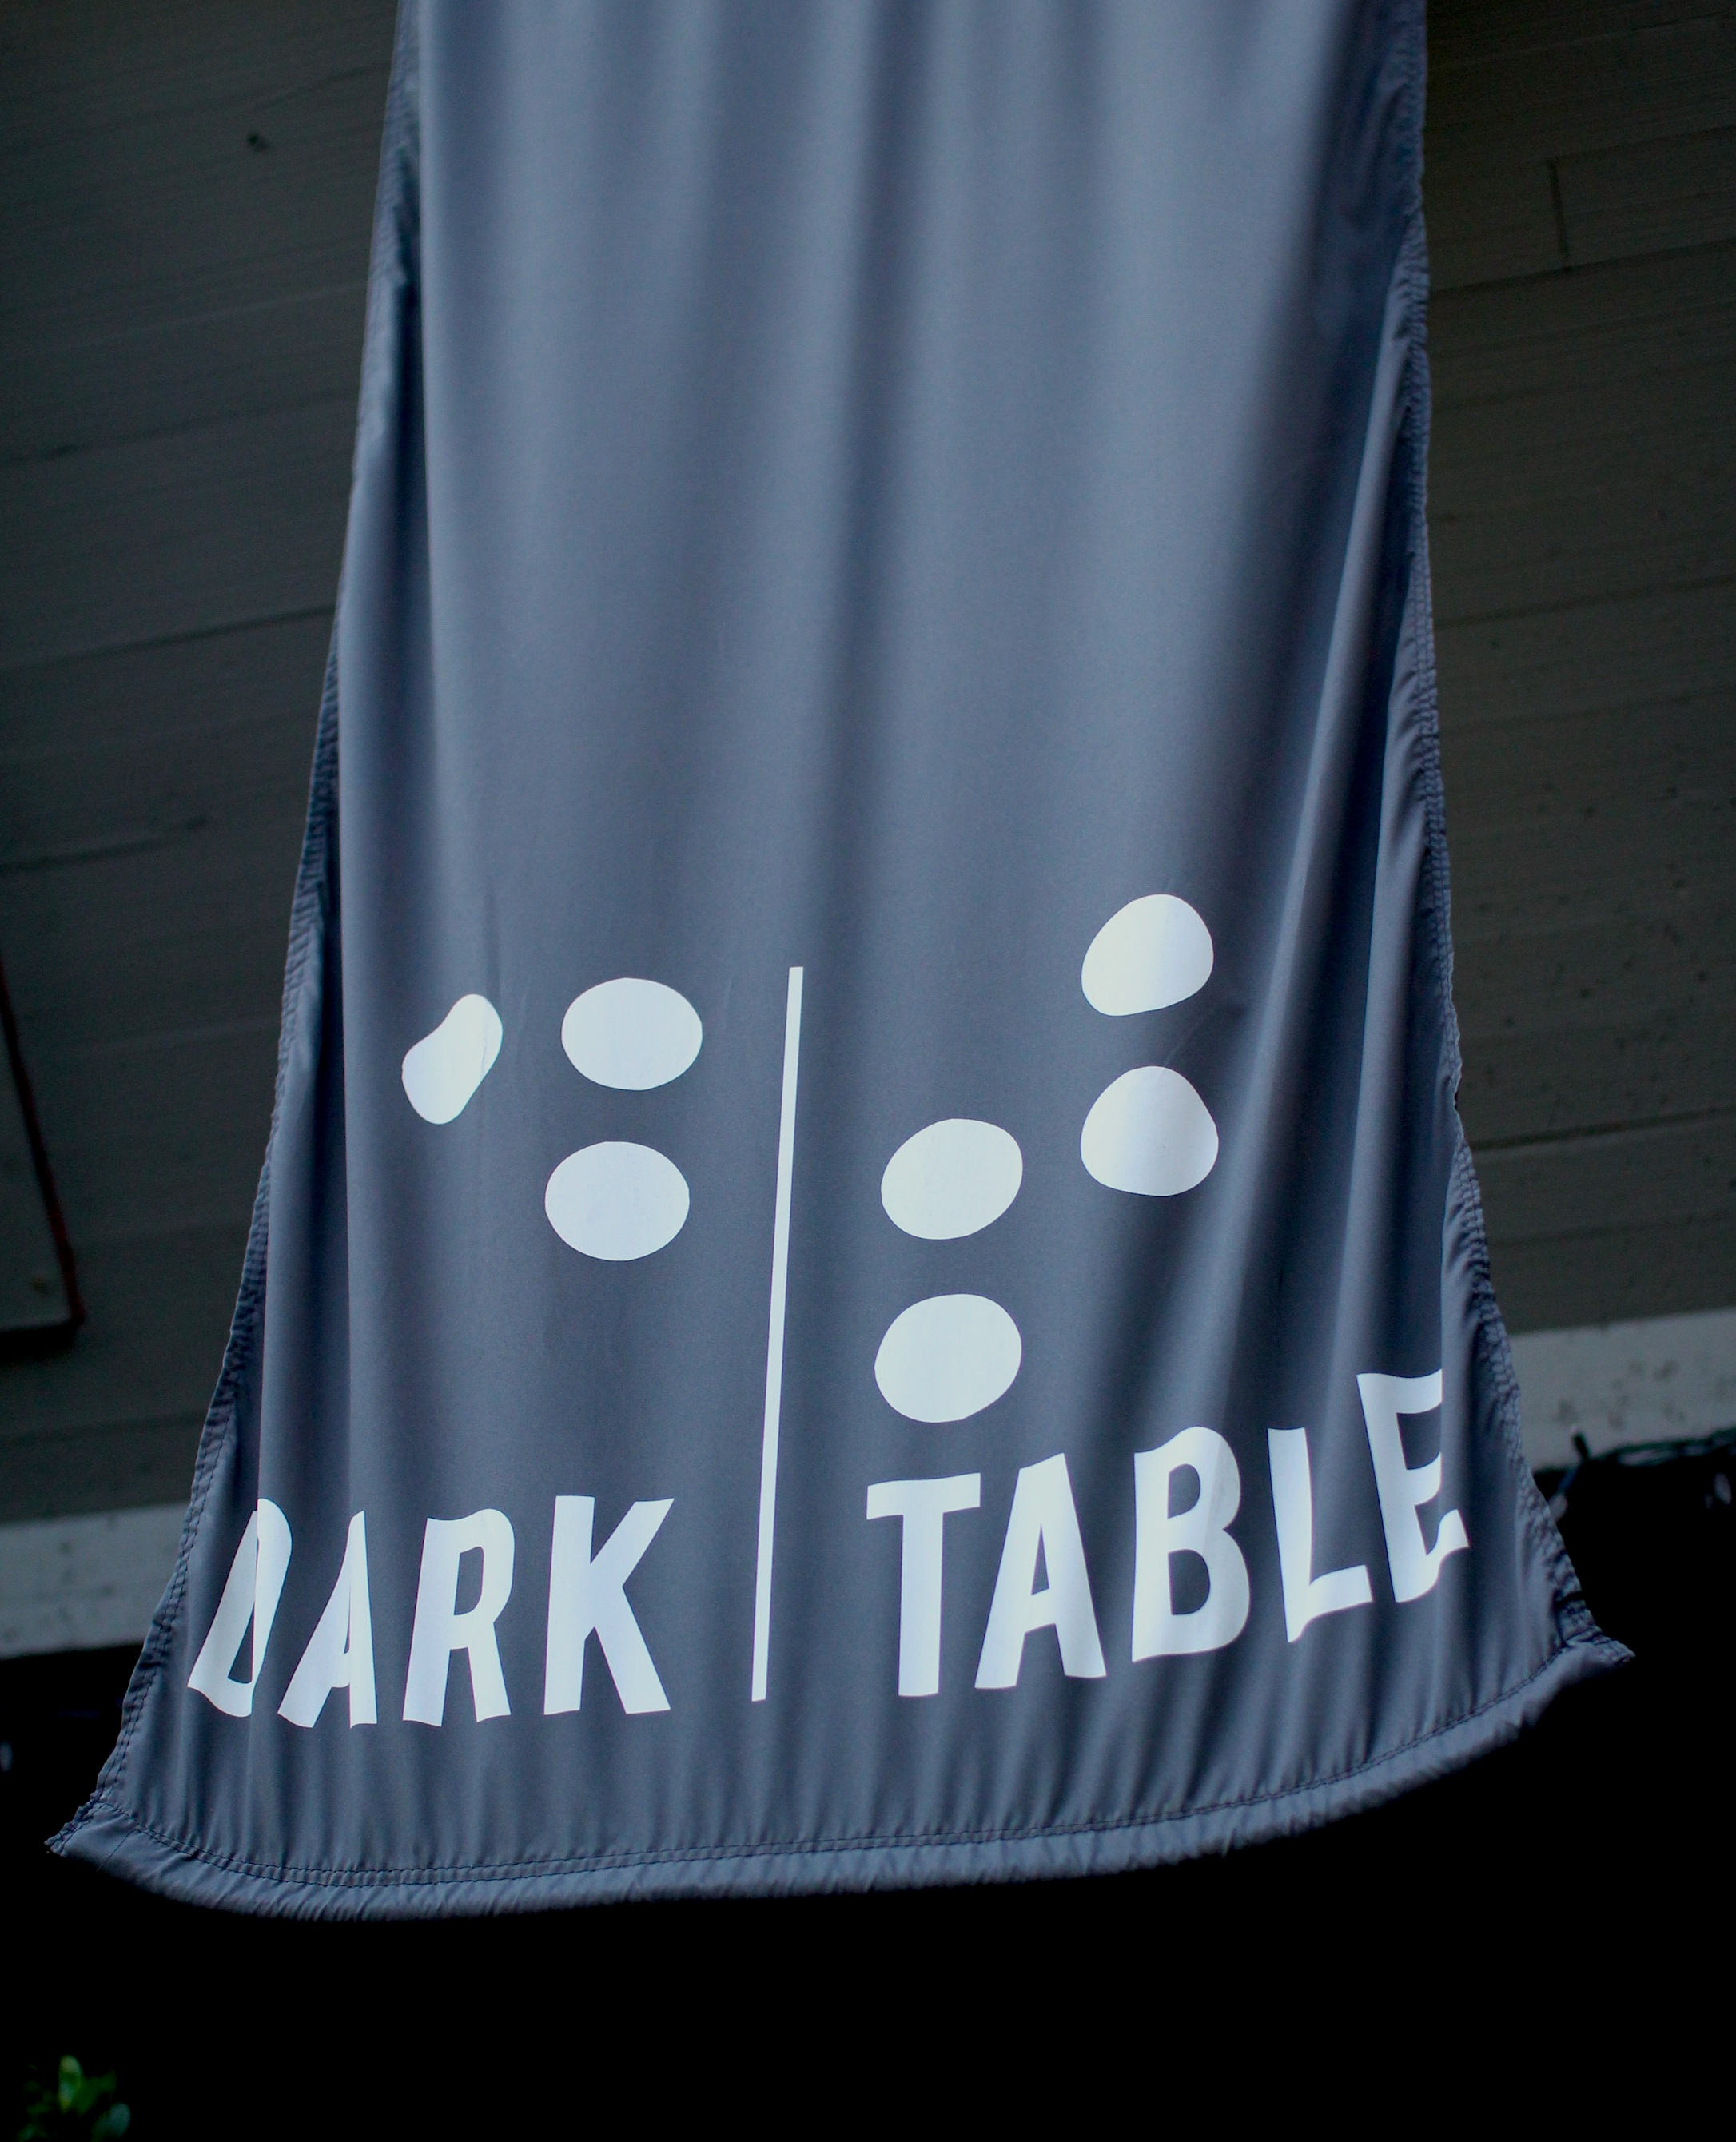 Dark Table Invites Its Patrons To Embrace An Extremely Unique Experience As  They Dine In The Dark, Giving Them A Taste Not Just Of Their Delectable  Menu But ...